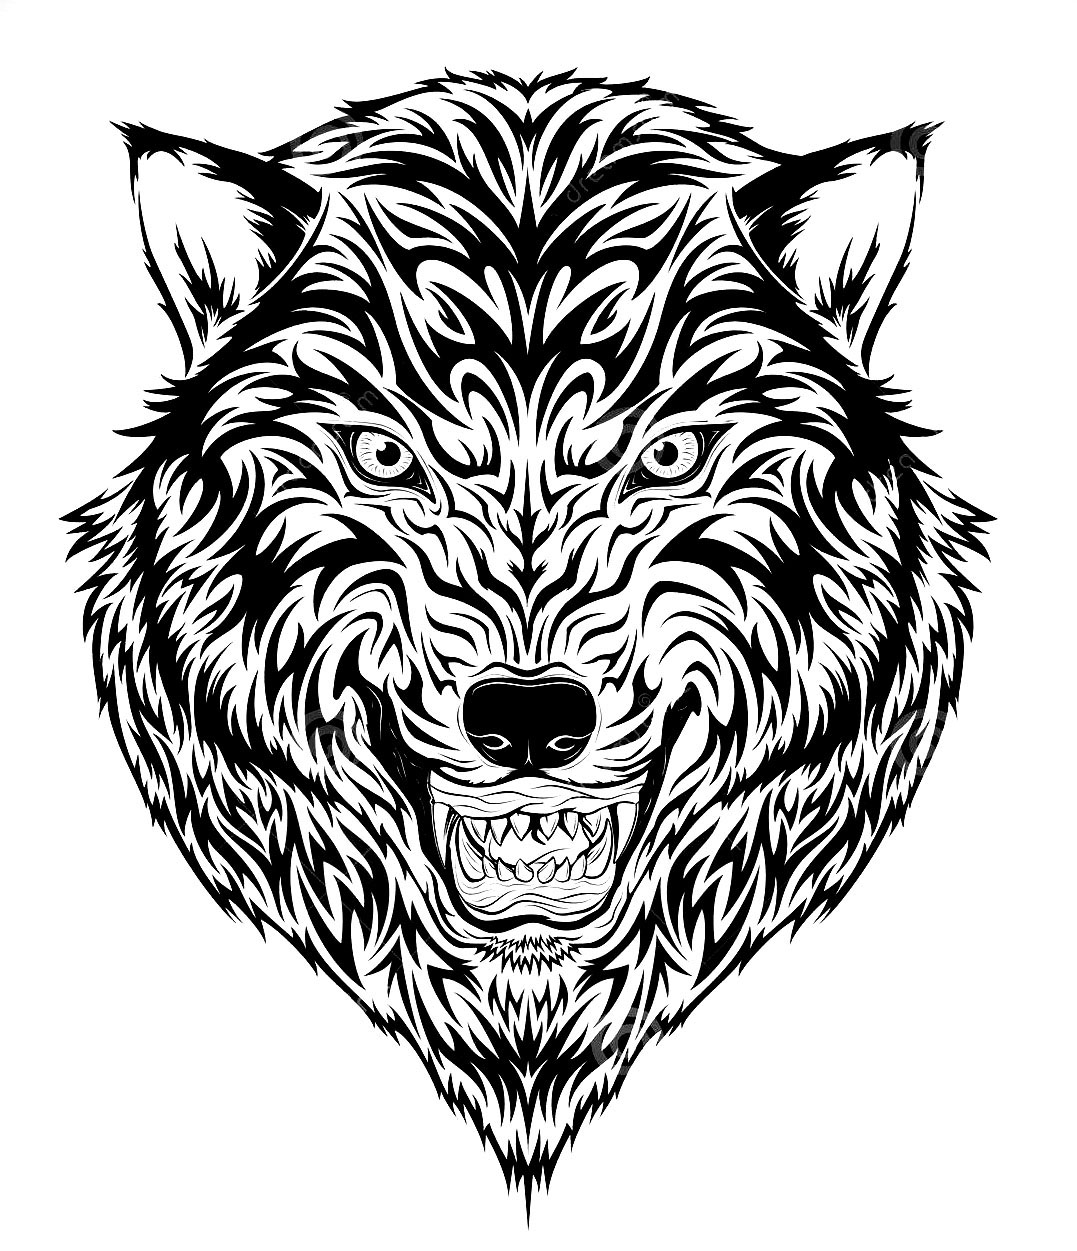 Tiger head composed of thick lines. Perfect for a tattoo